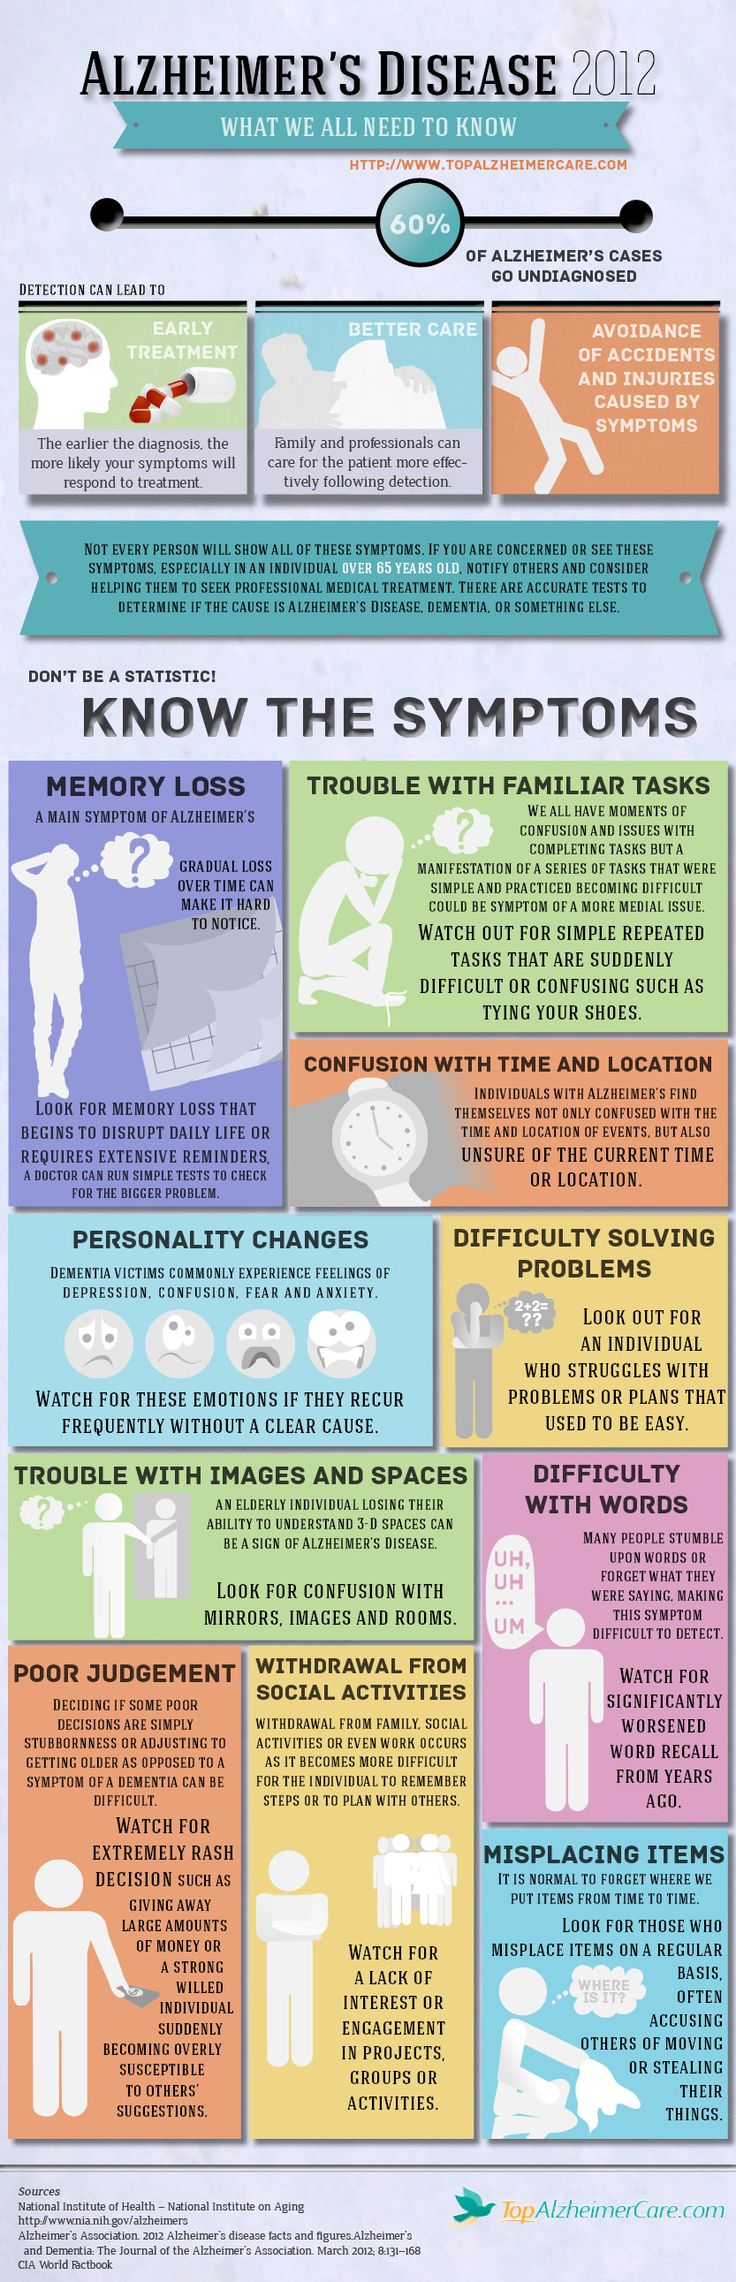 #Alzheimers Disease #Infographic